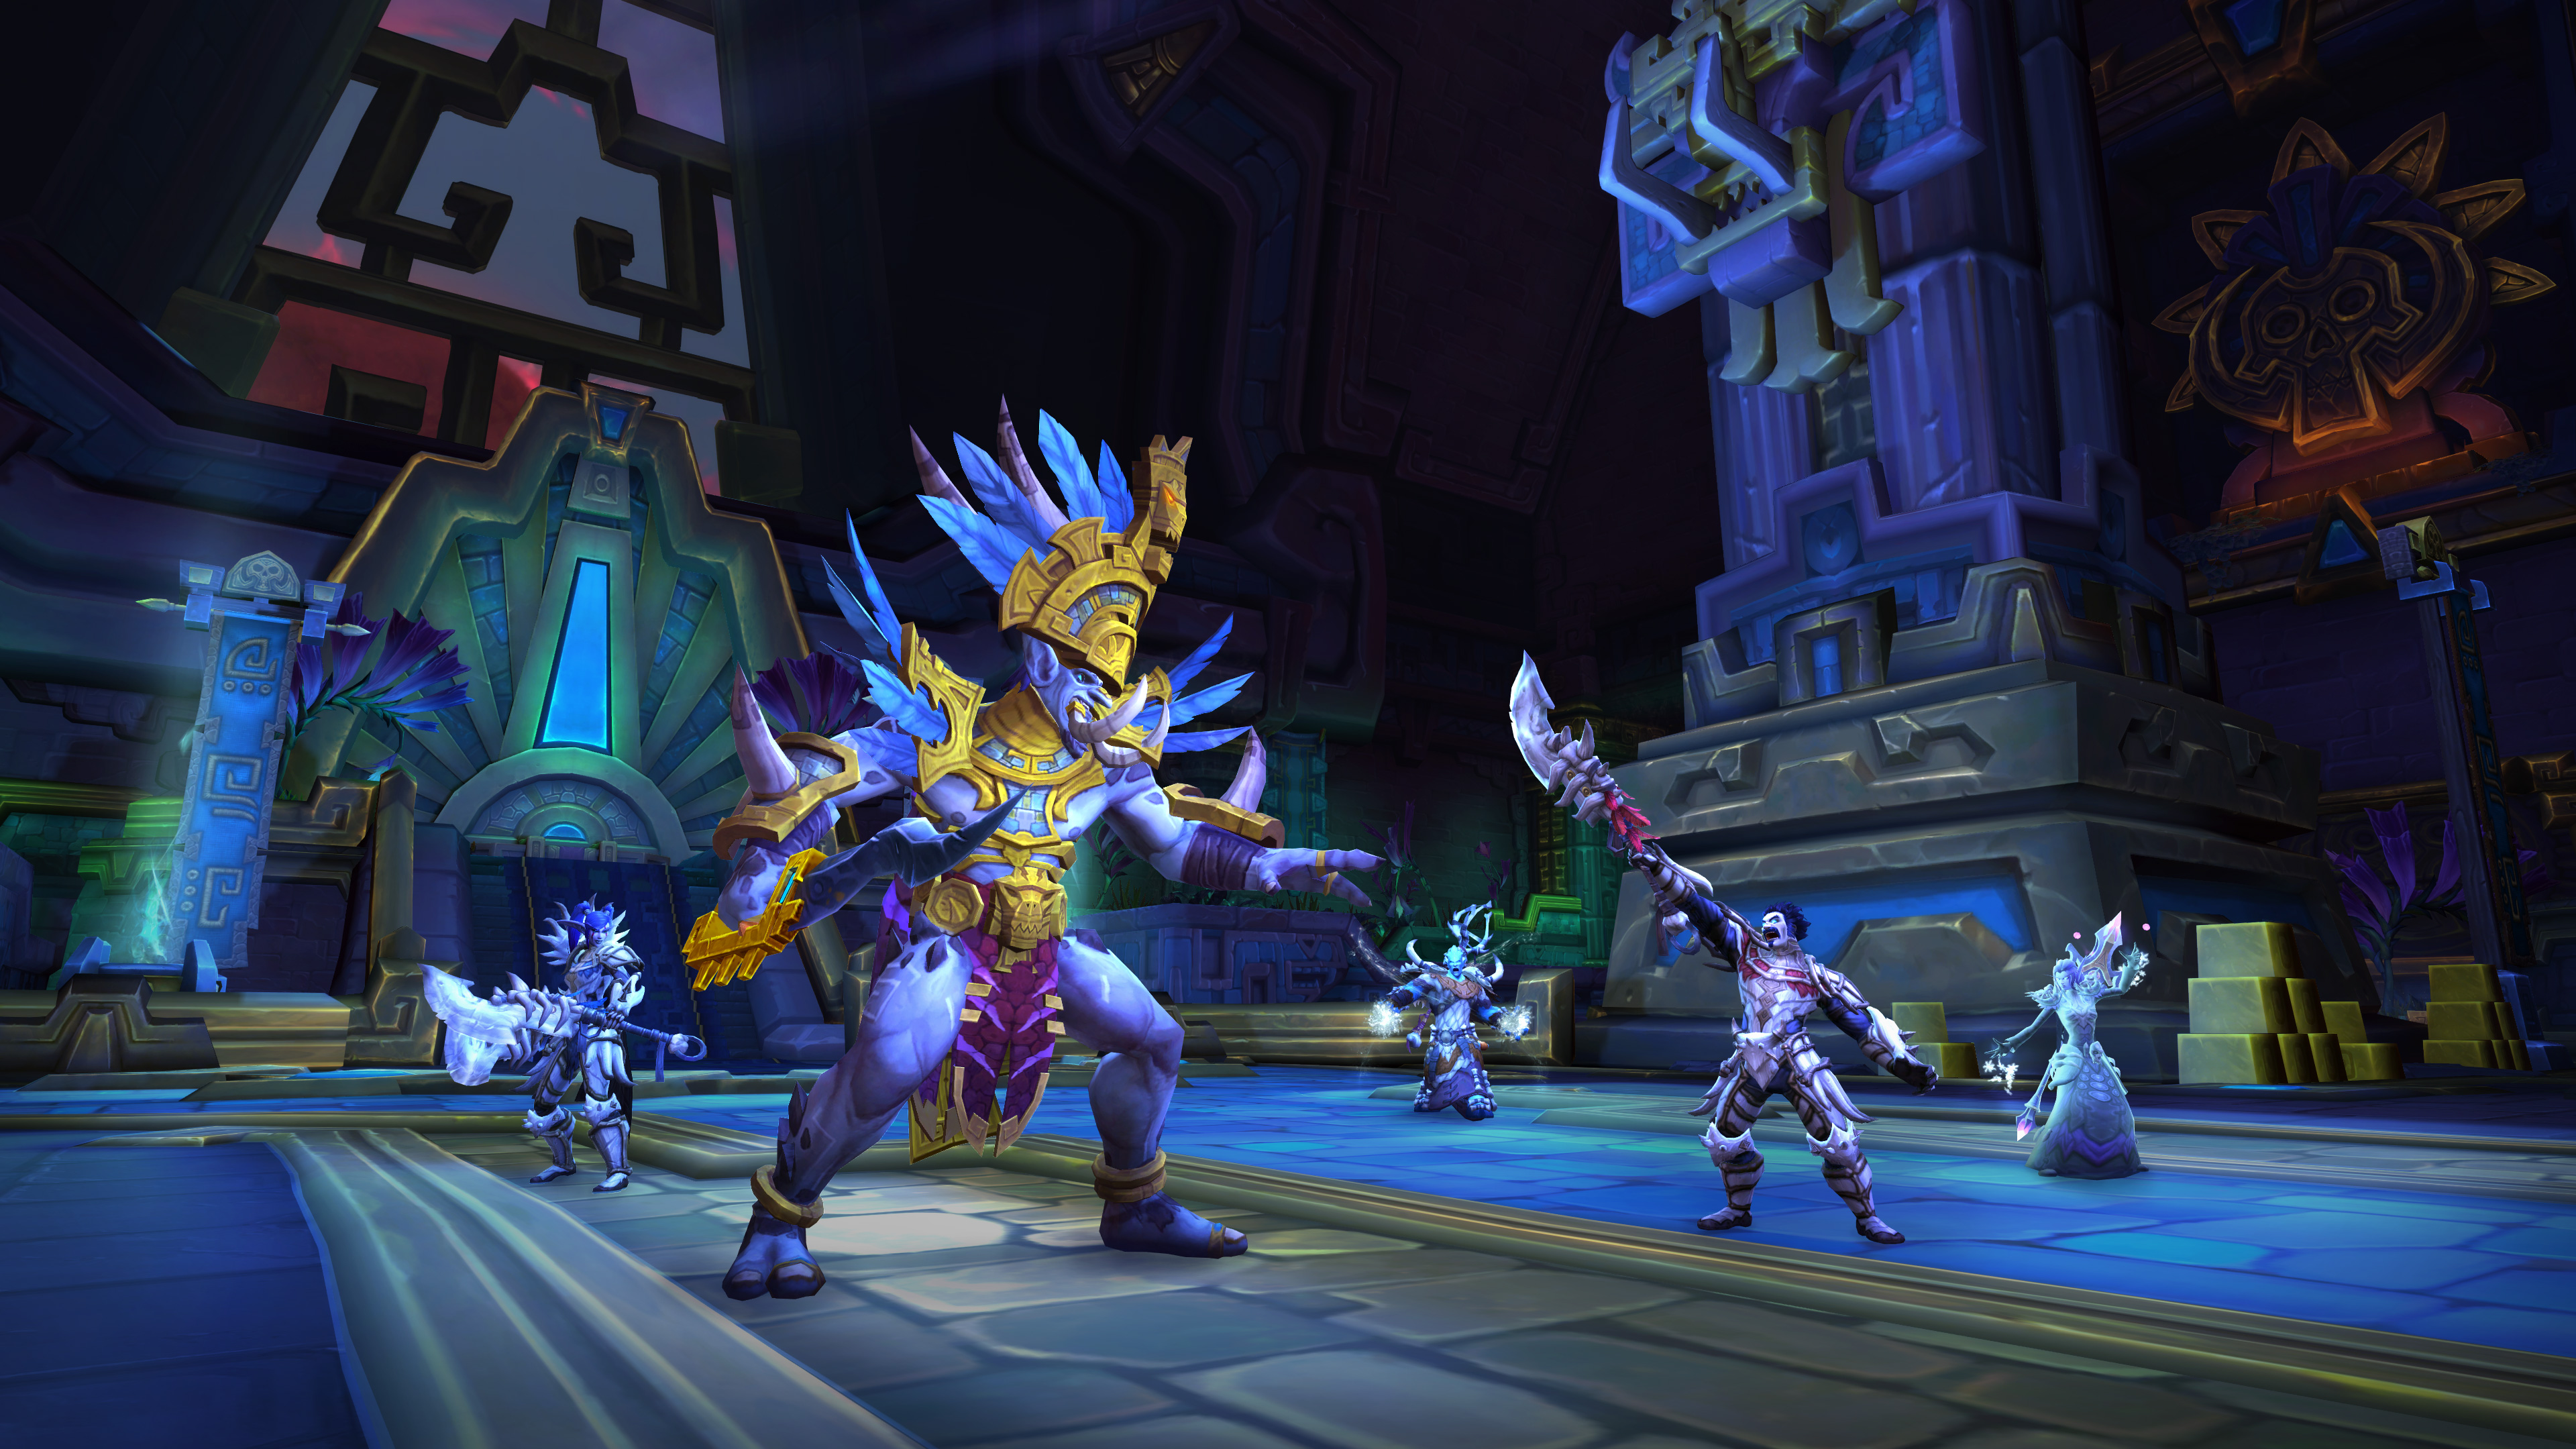 World of Warcraft - A group of raiders attack King Rhastakhan in the Battle for Dazar'Alor